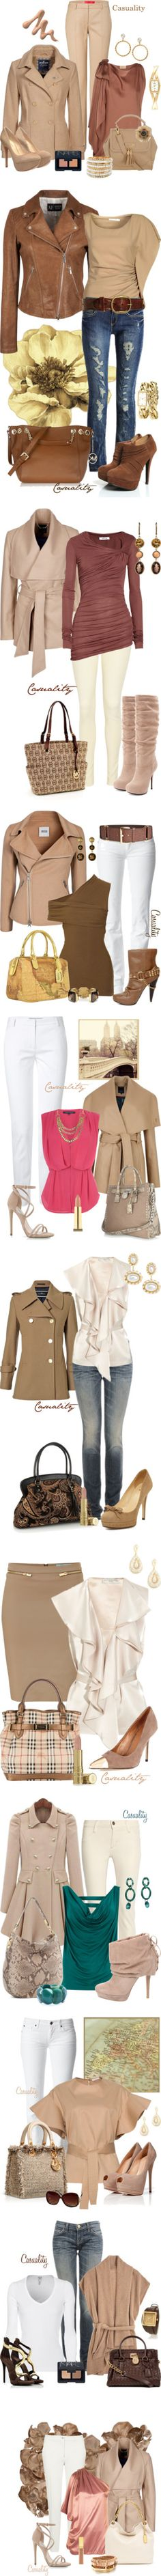 """Creme/Neutrals"" by casuality on Polyvore - love these color combo's"